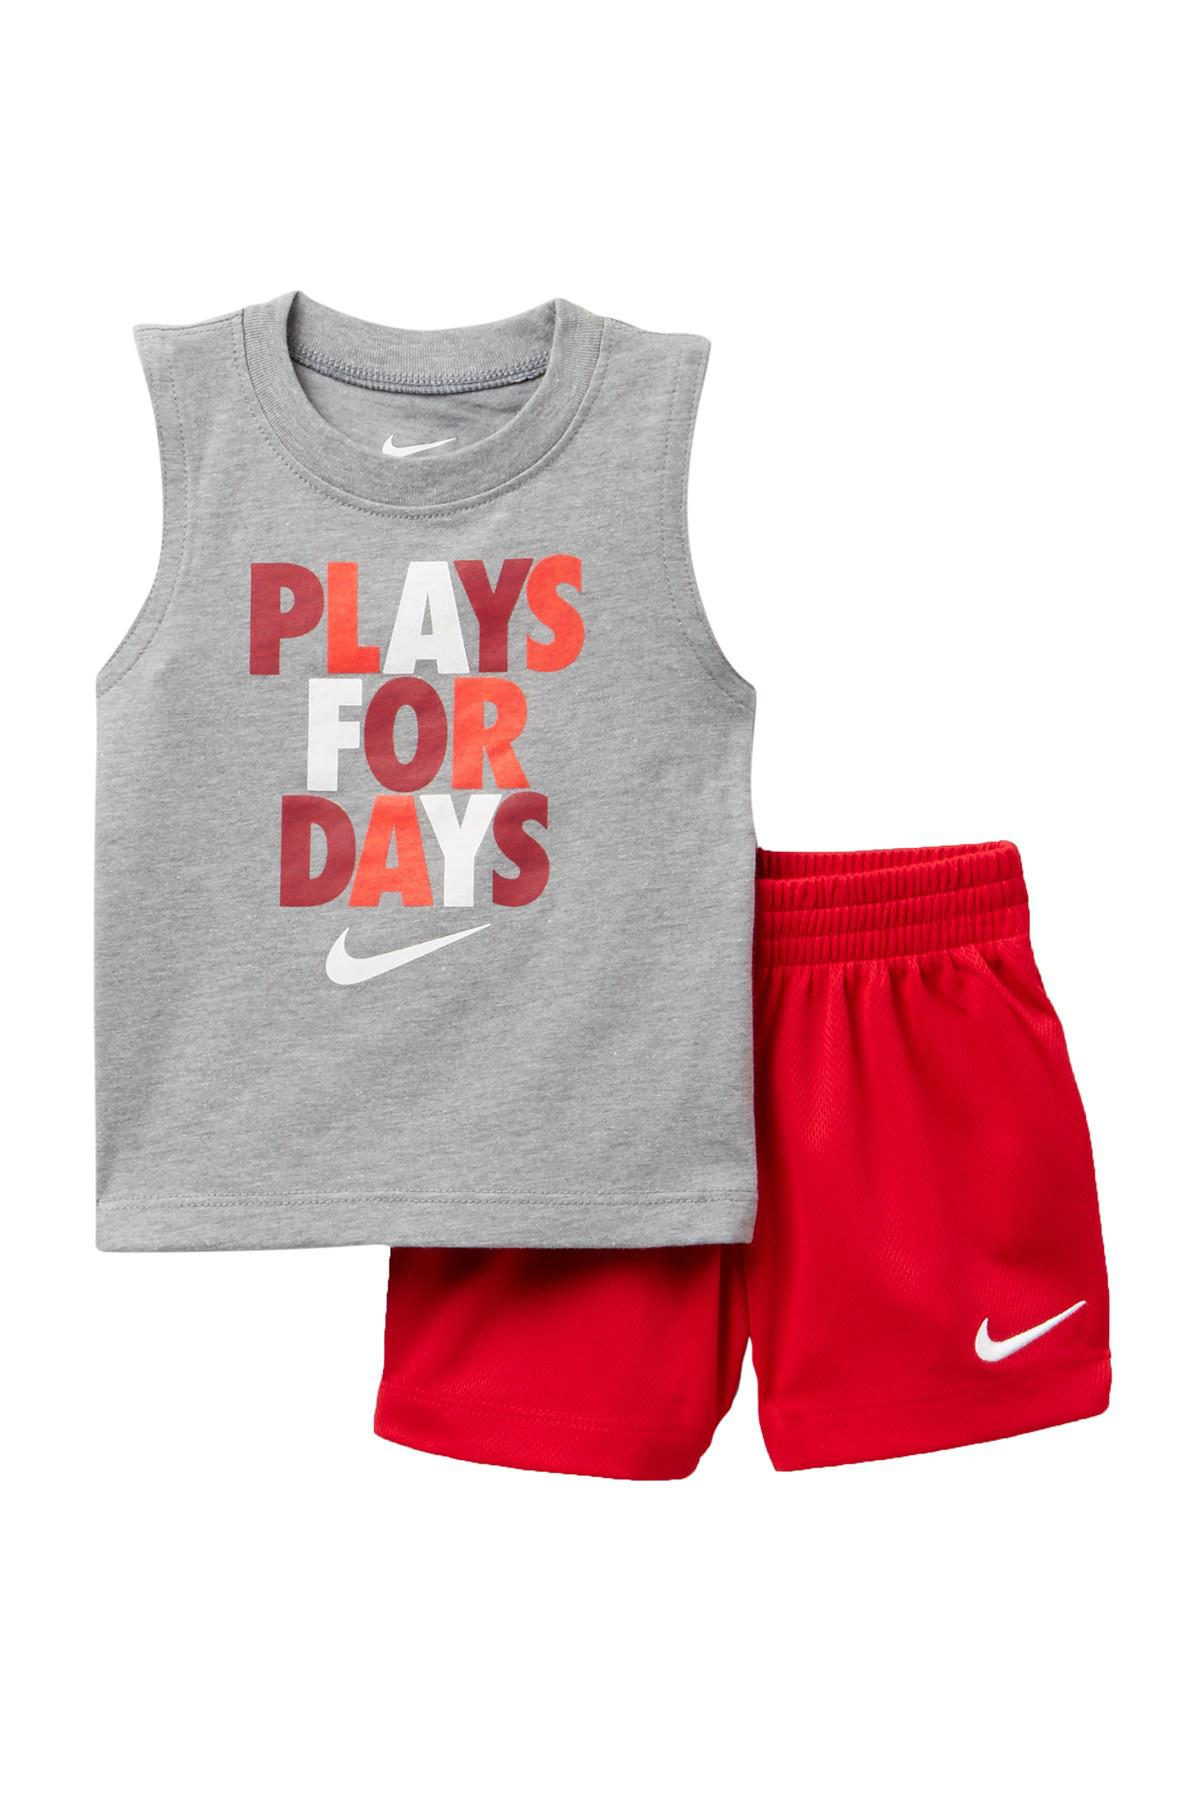 Lyst - Nike Plays 4 Days Muscle Tee   Shorts Set - 2 Piece (baby ... 89a153b9a